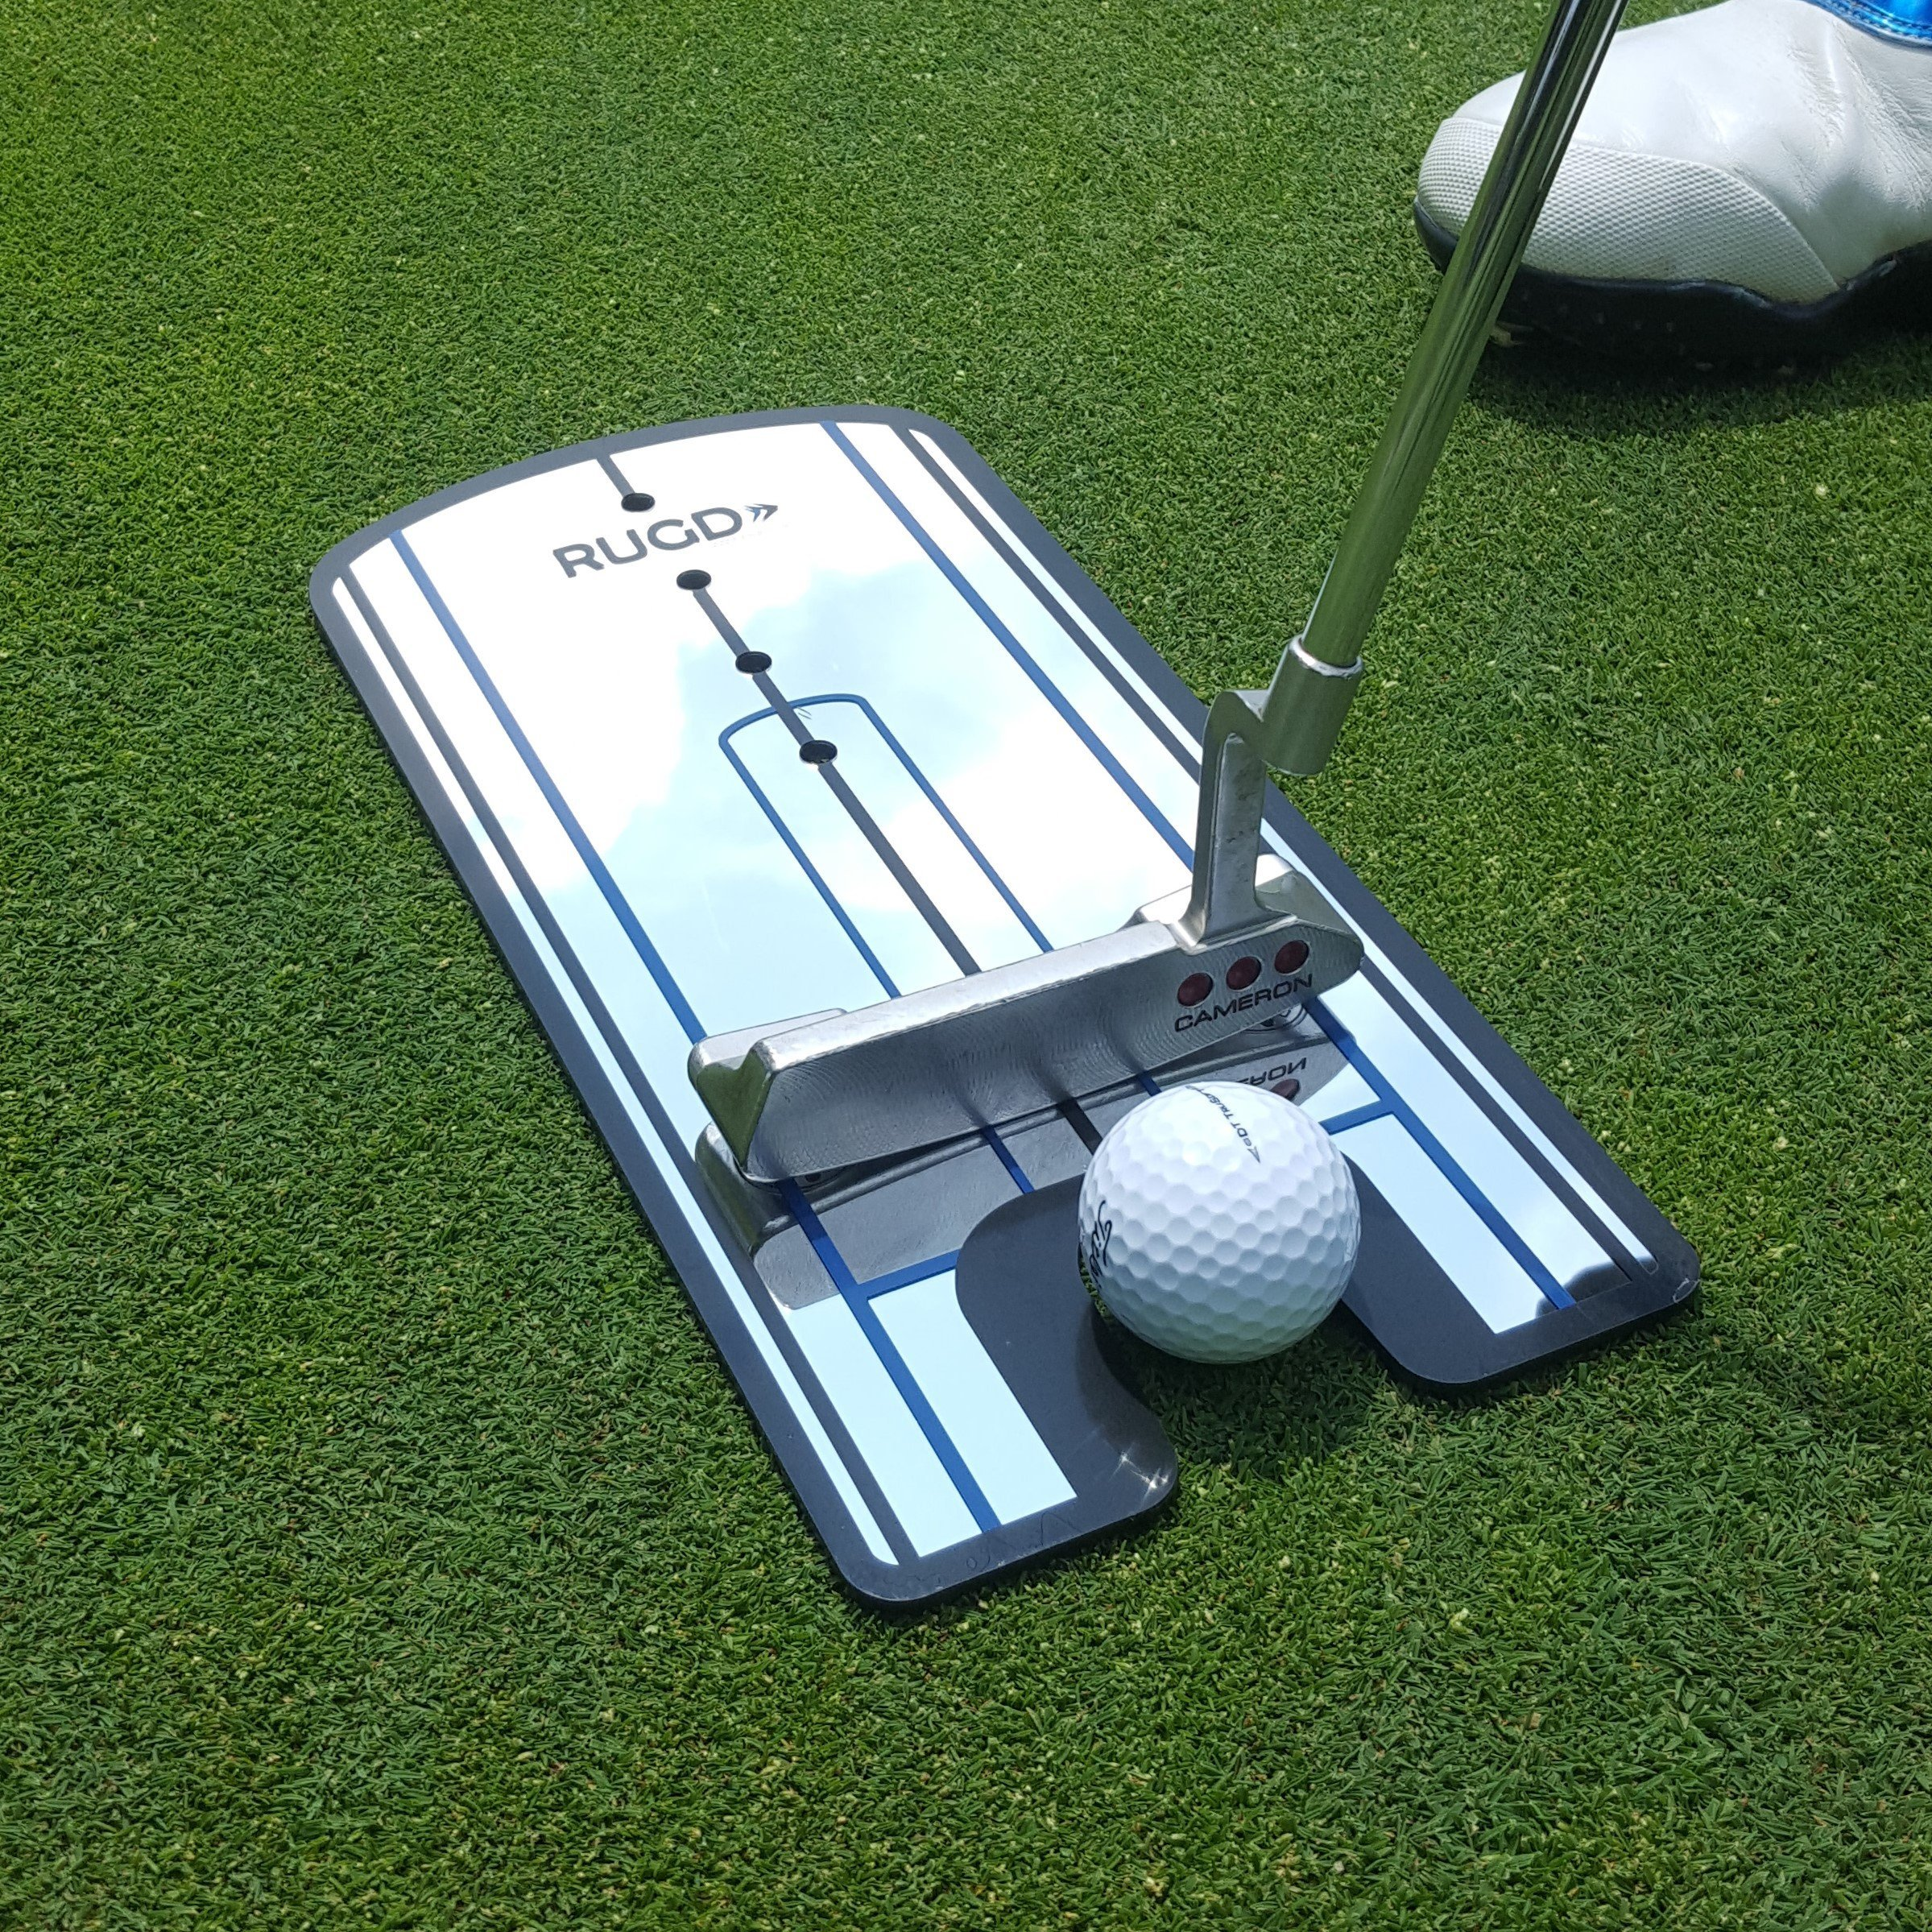 RUGD Sports: GENIUNE Putting Alignment Mirror - Golf Training Aid With 6-inch Tempo Drawback Marker